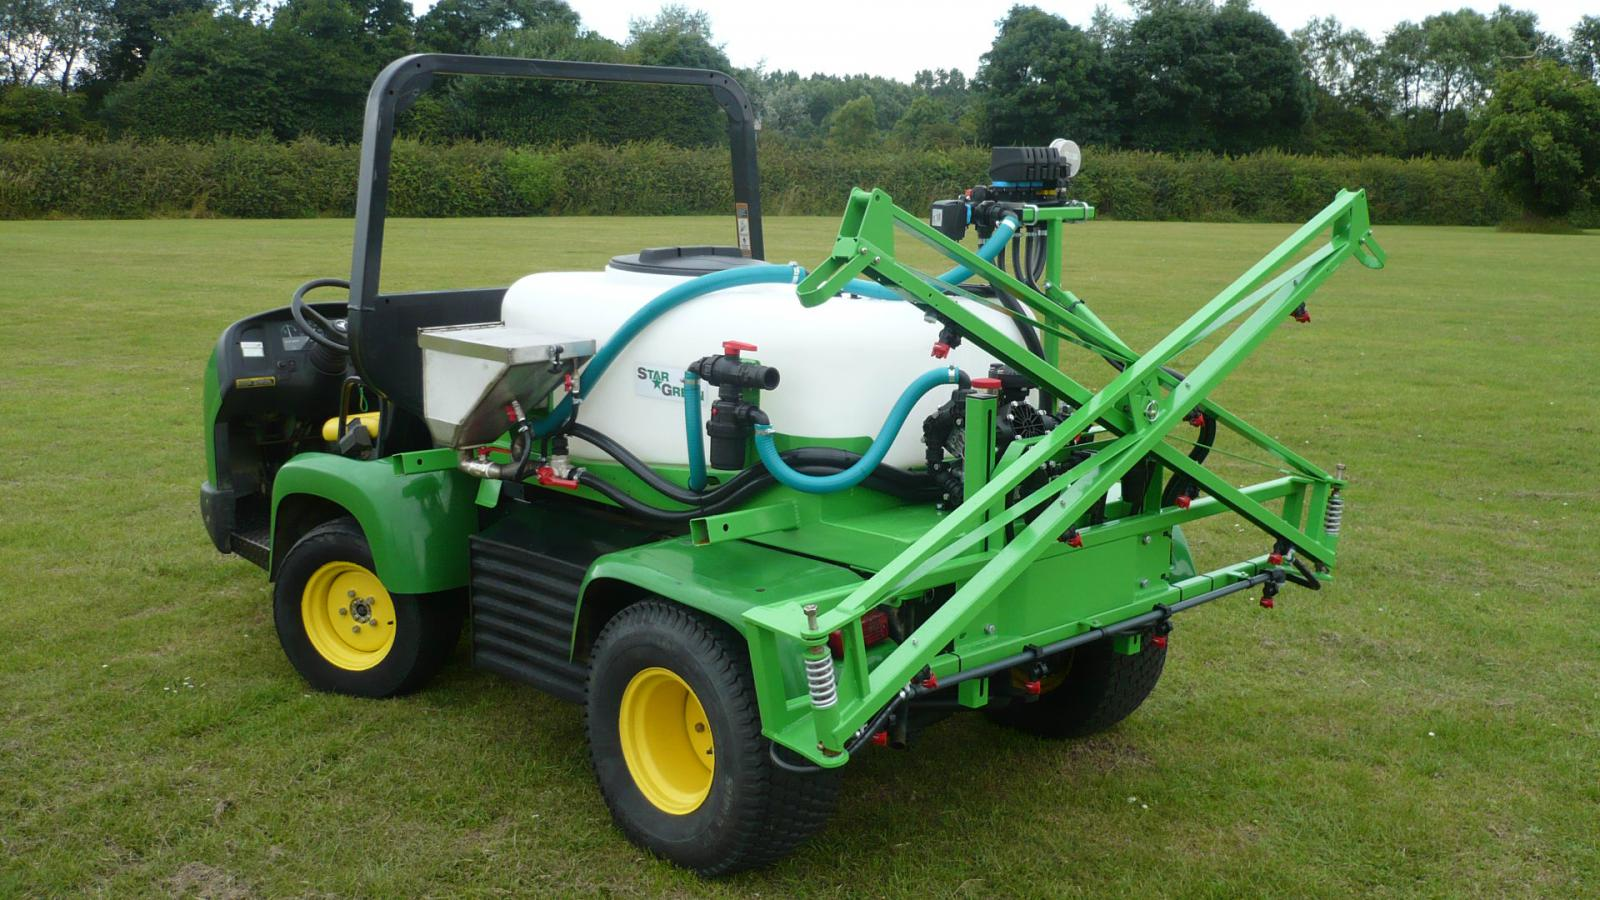 Both DM450Pro and DM700Pro STARGREEN UTV Demount Amenity Sprayers have boom lock catches to hold the booms closed in storage and transit